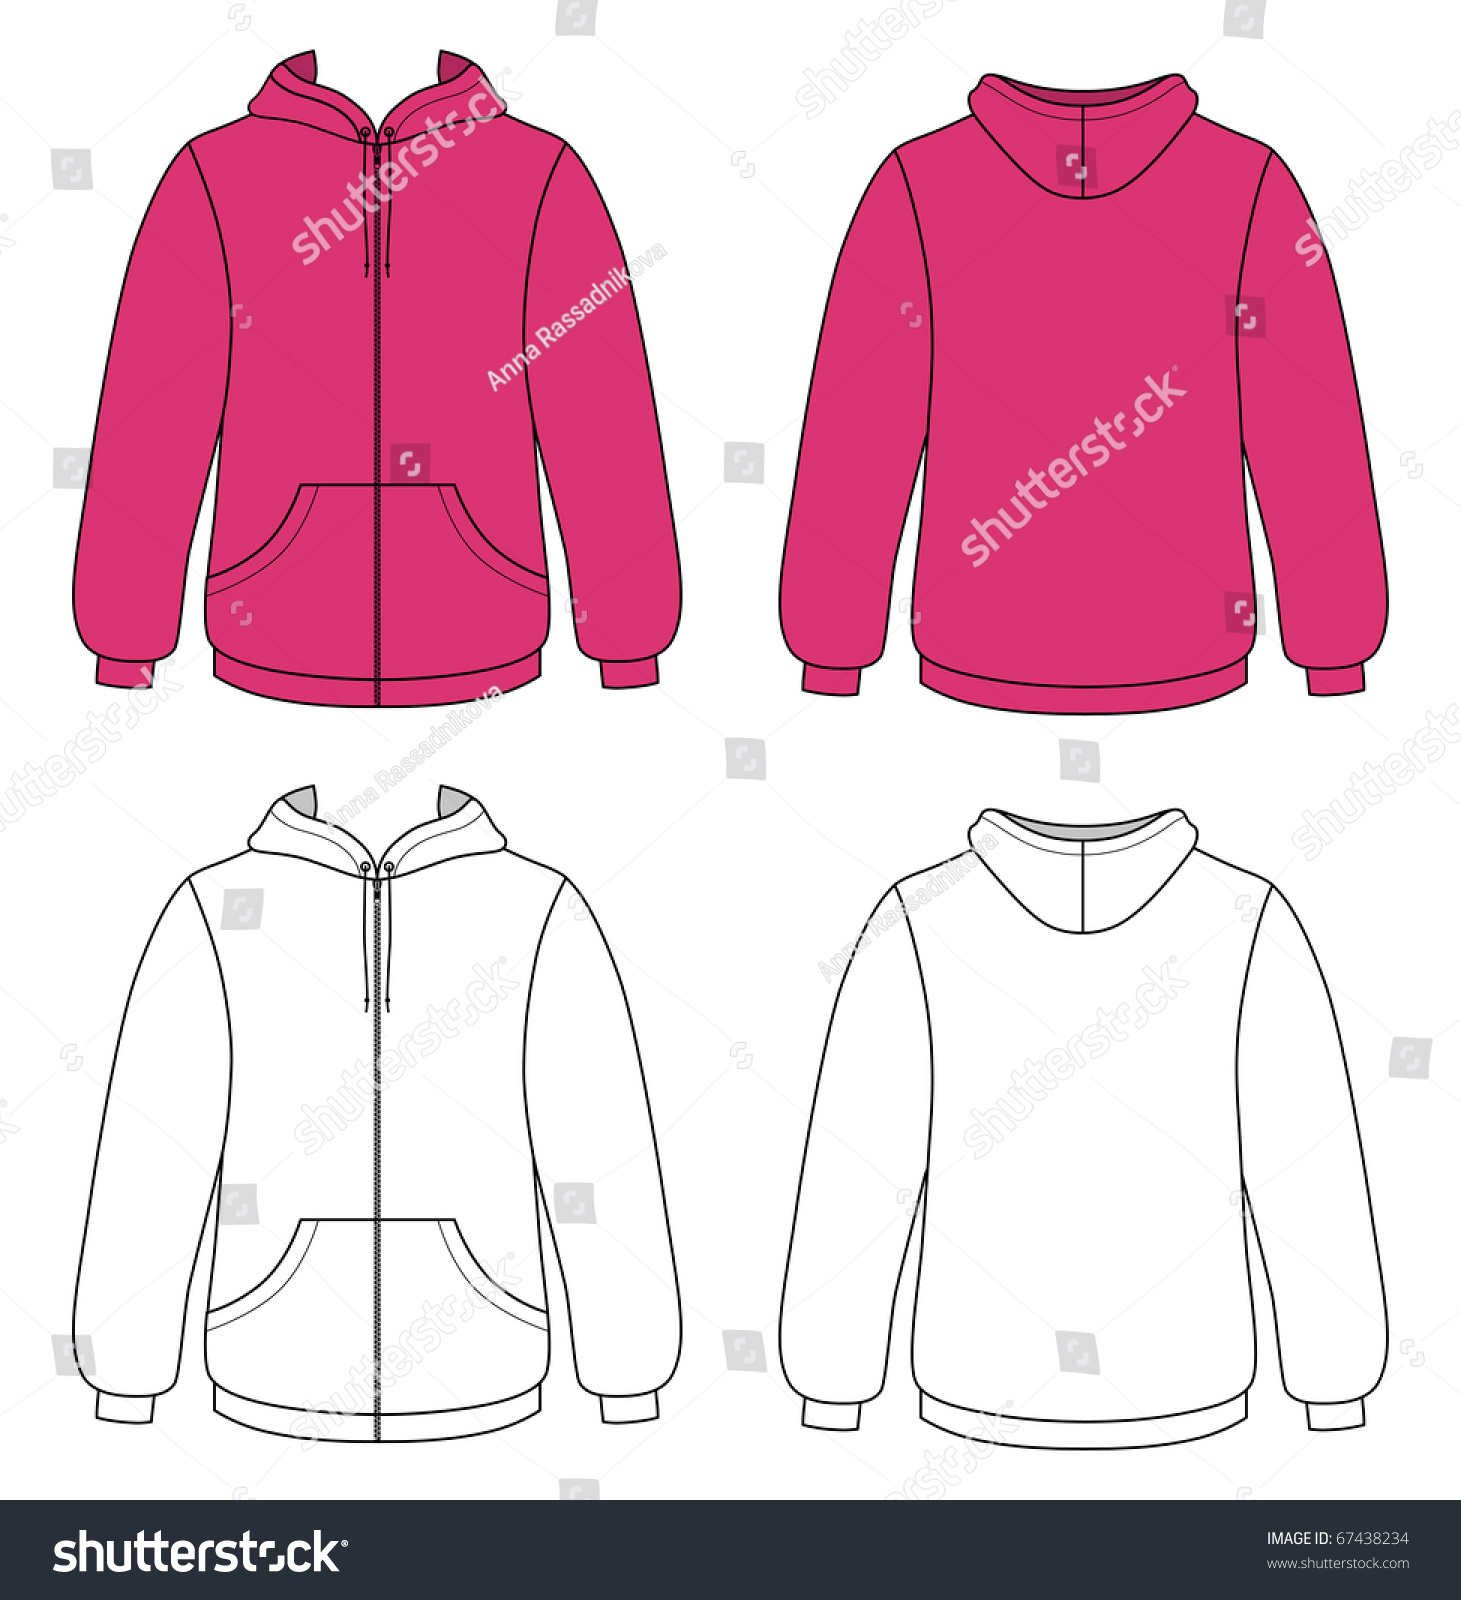 template outline illustration of a blank hooded sweater 67438234